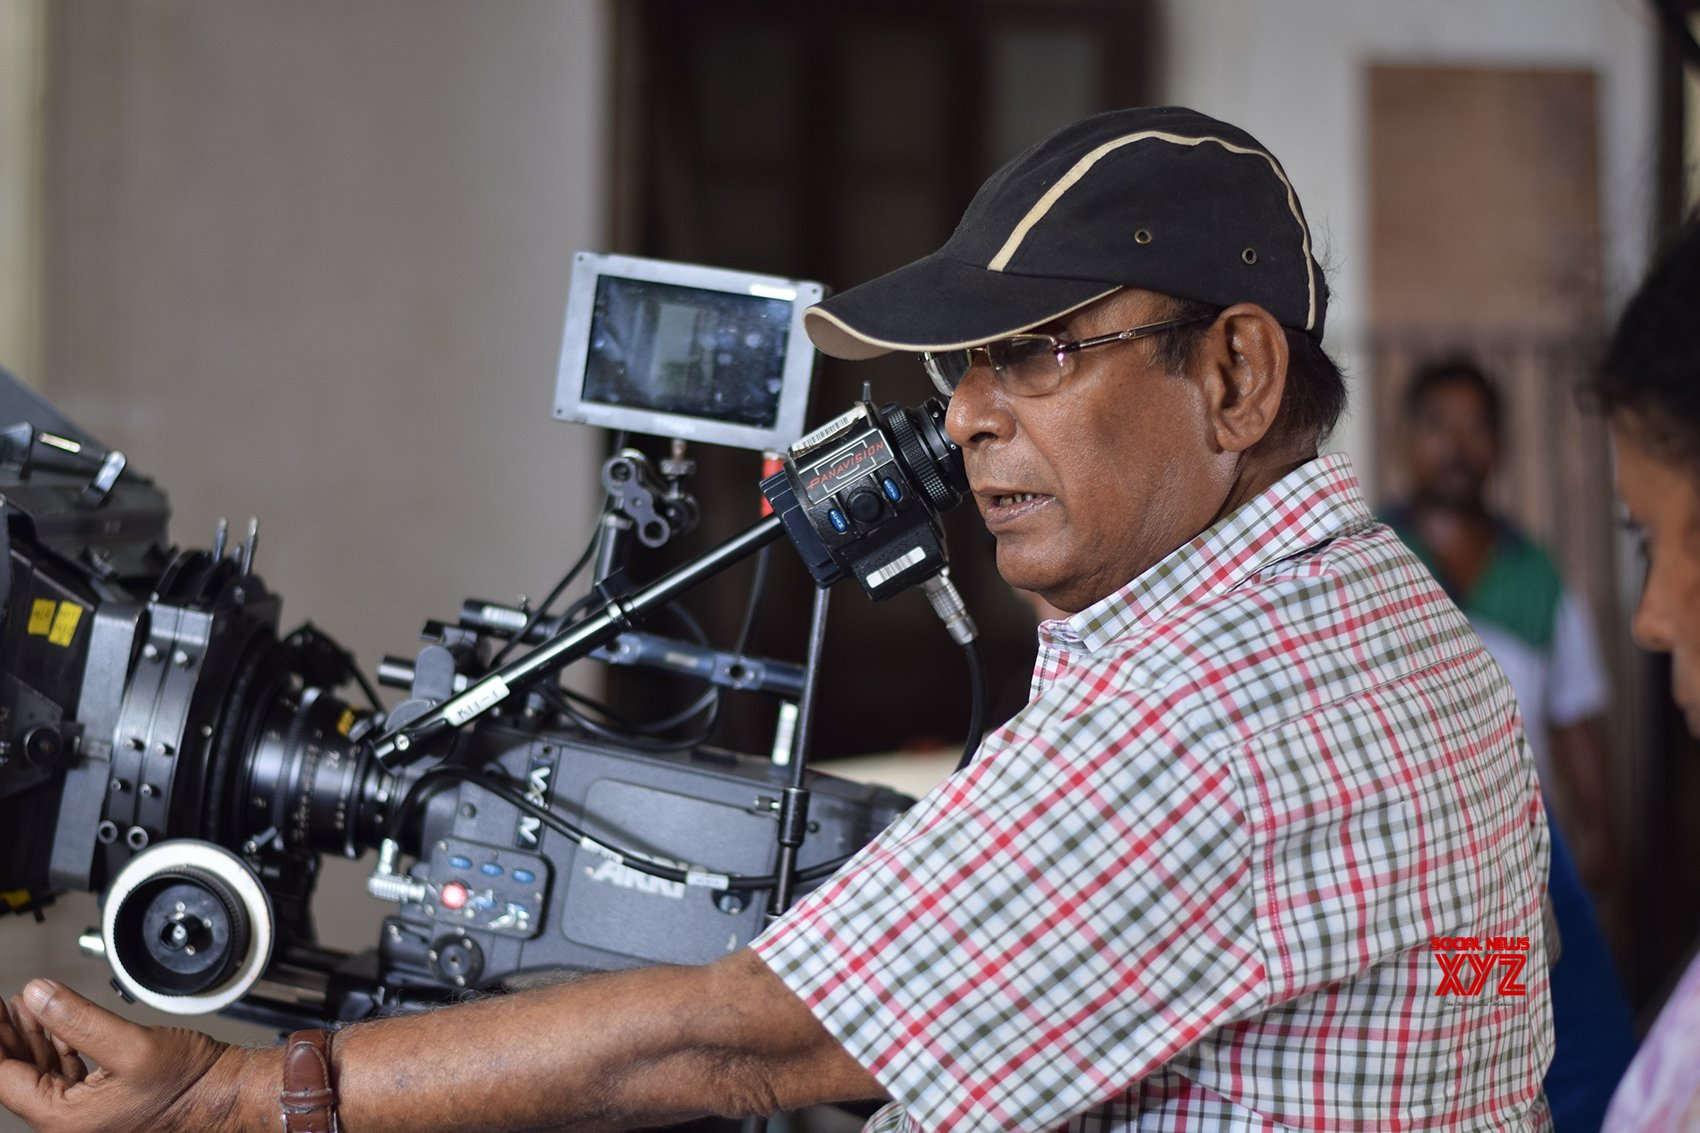 Kolkata: Legendary Bengali filmmaker Buddhadeb Dasgupta died at the age of 77 this morning due to age - related complications in Kolkata. #Gallery